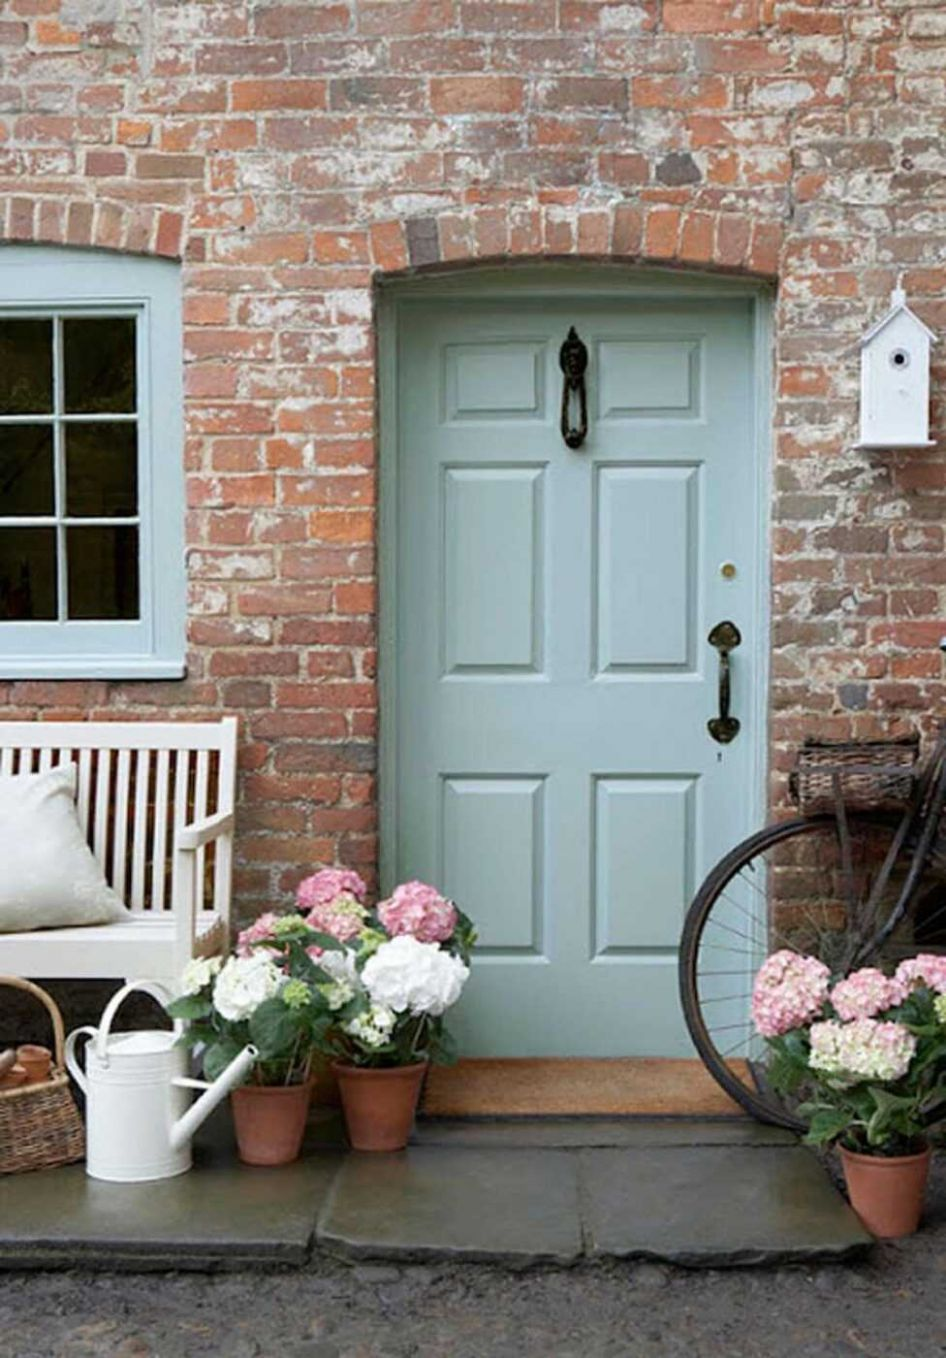 Welcome Spring: 12 Great DIY Flower Pot Ideas for Front Doors